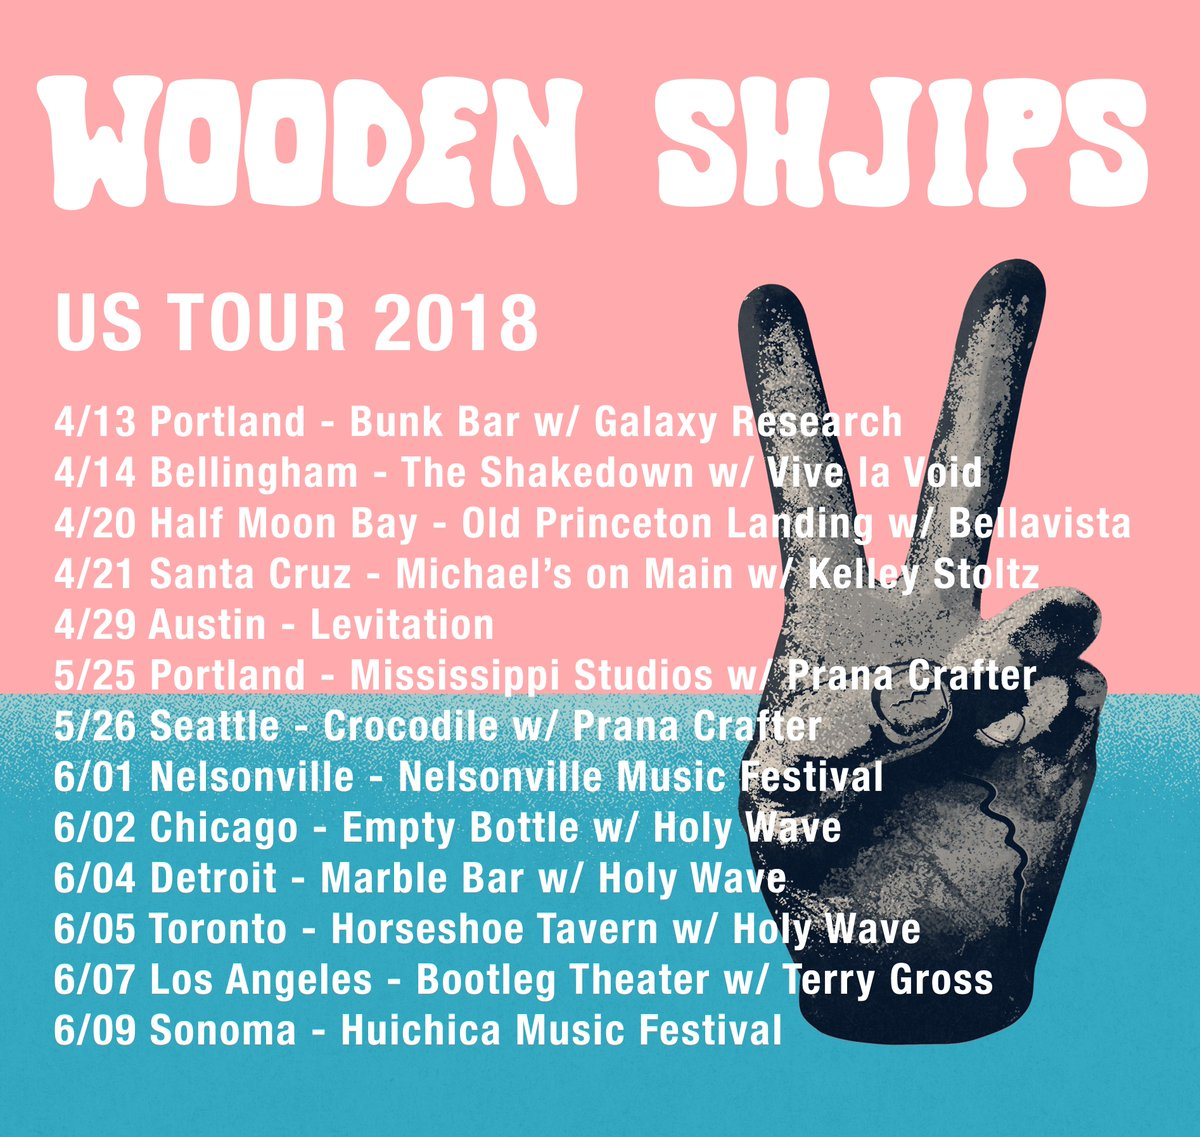 Wooden Shjips On Twitter Us Tour Coming Up W Many Super Awesome